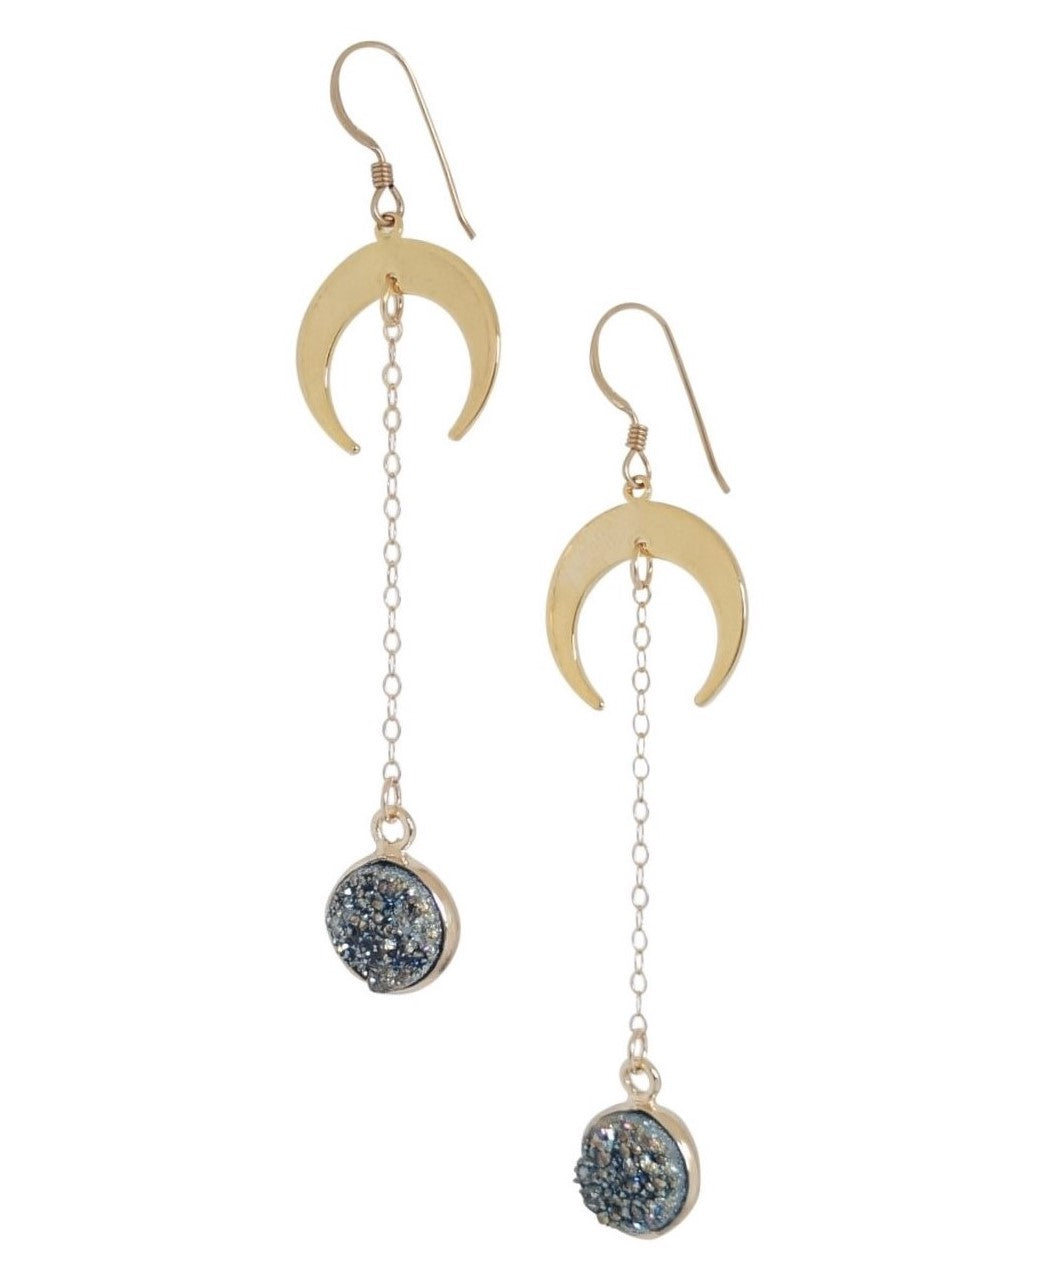 Dreamer Earrings - Carolyn Hearn Designs